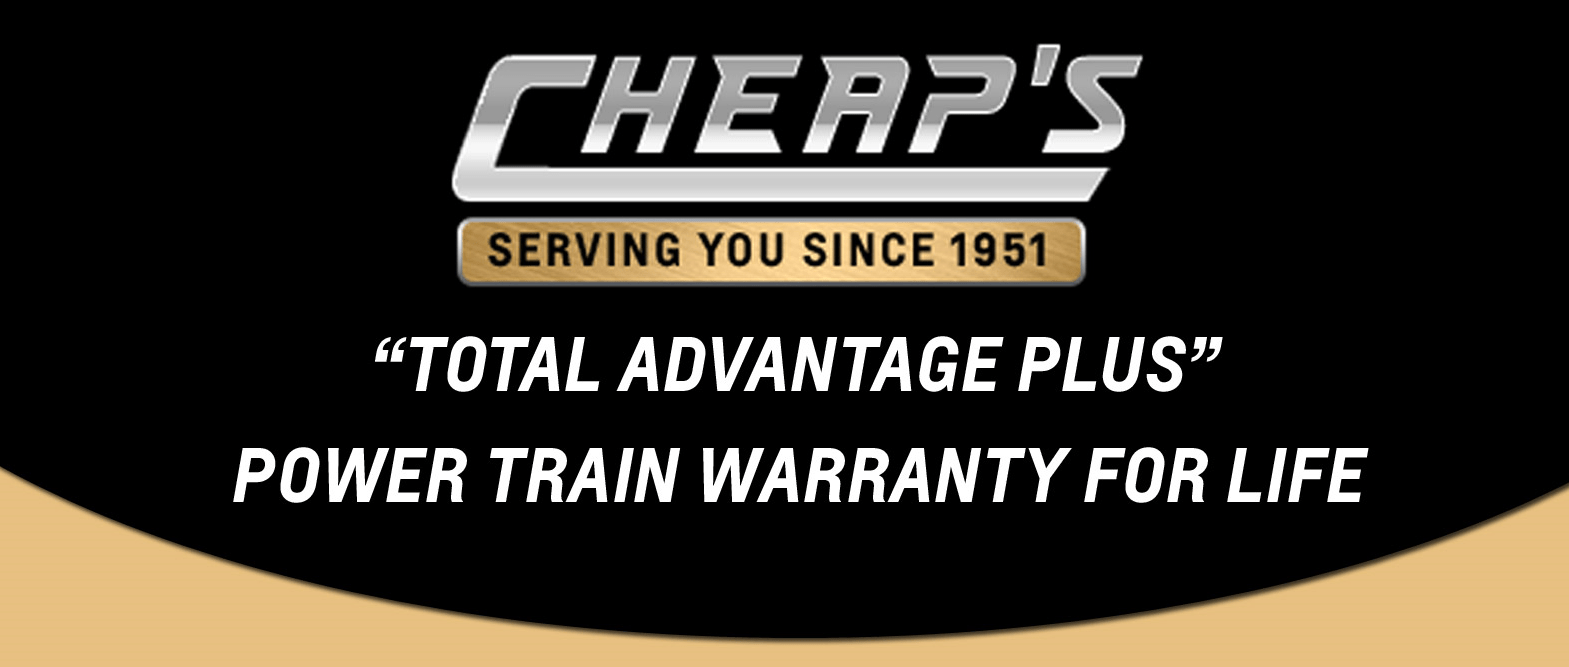 Lifetime Power Train Warranty Slide